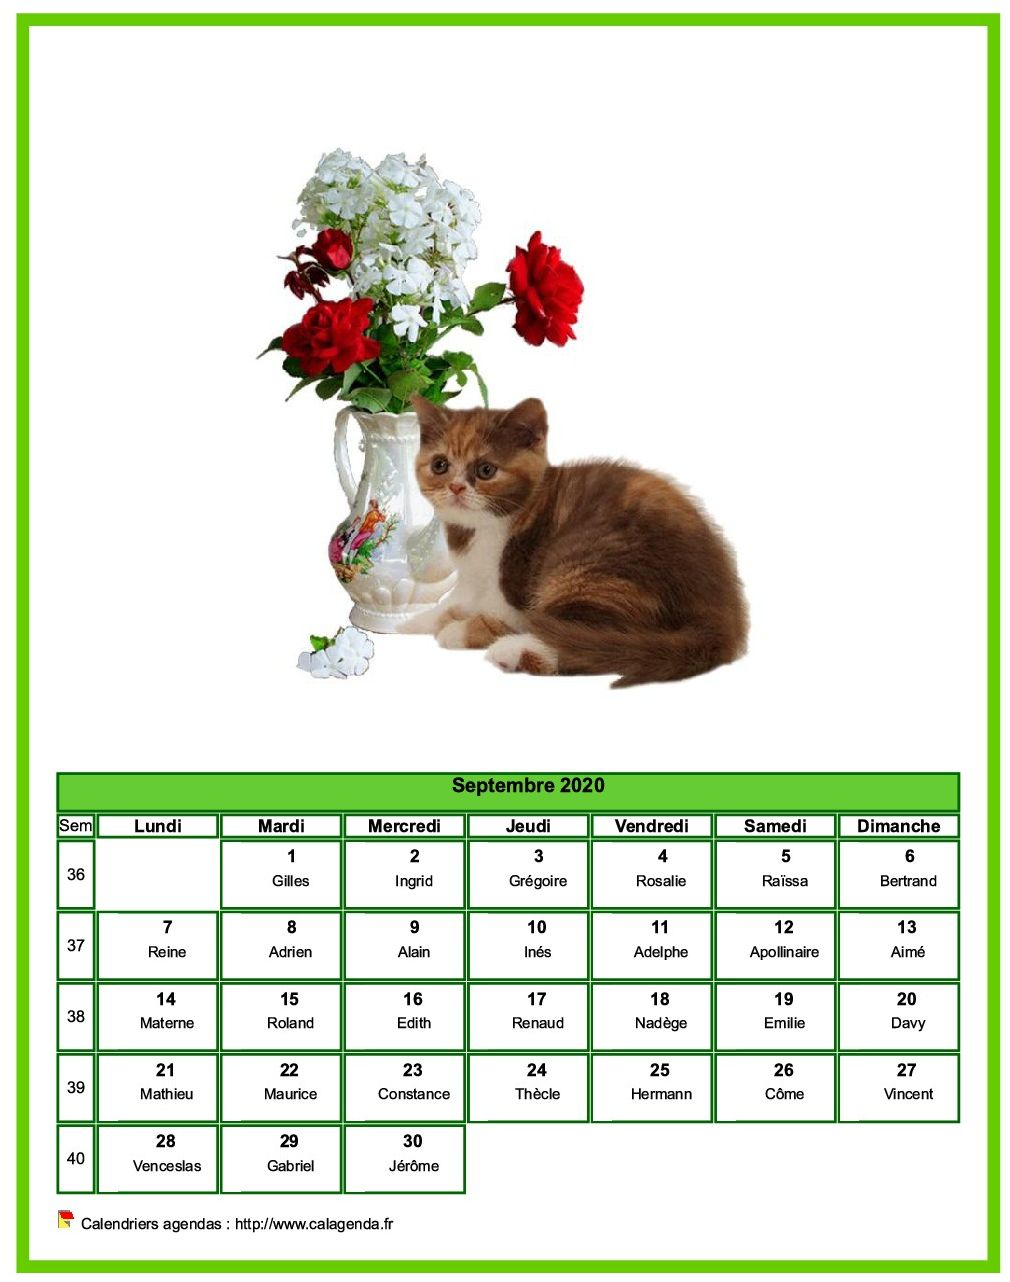 Calendrier septembre chats